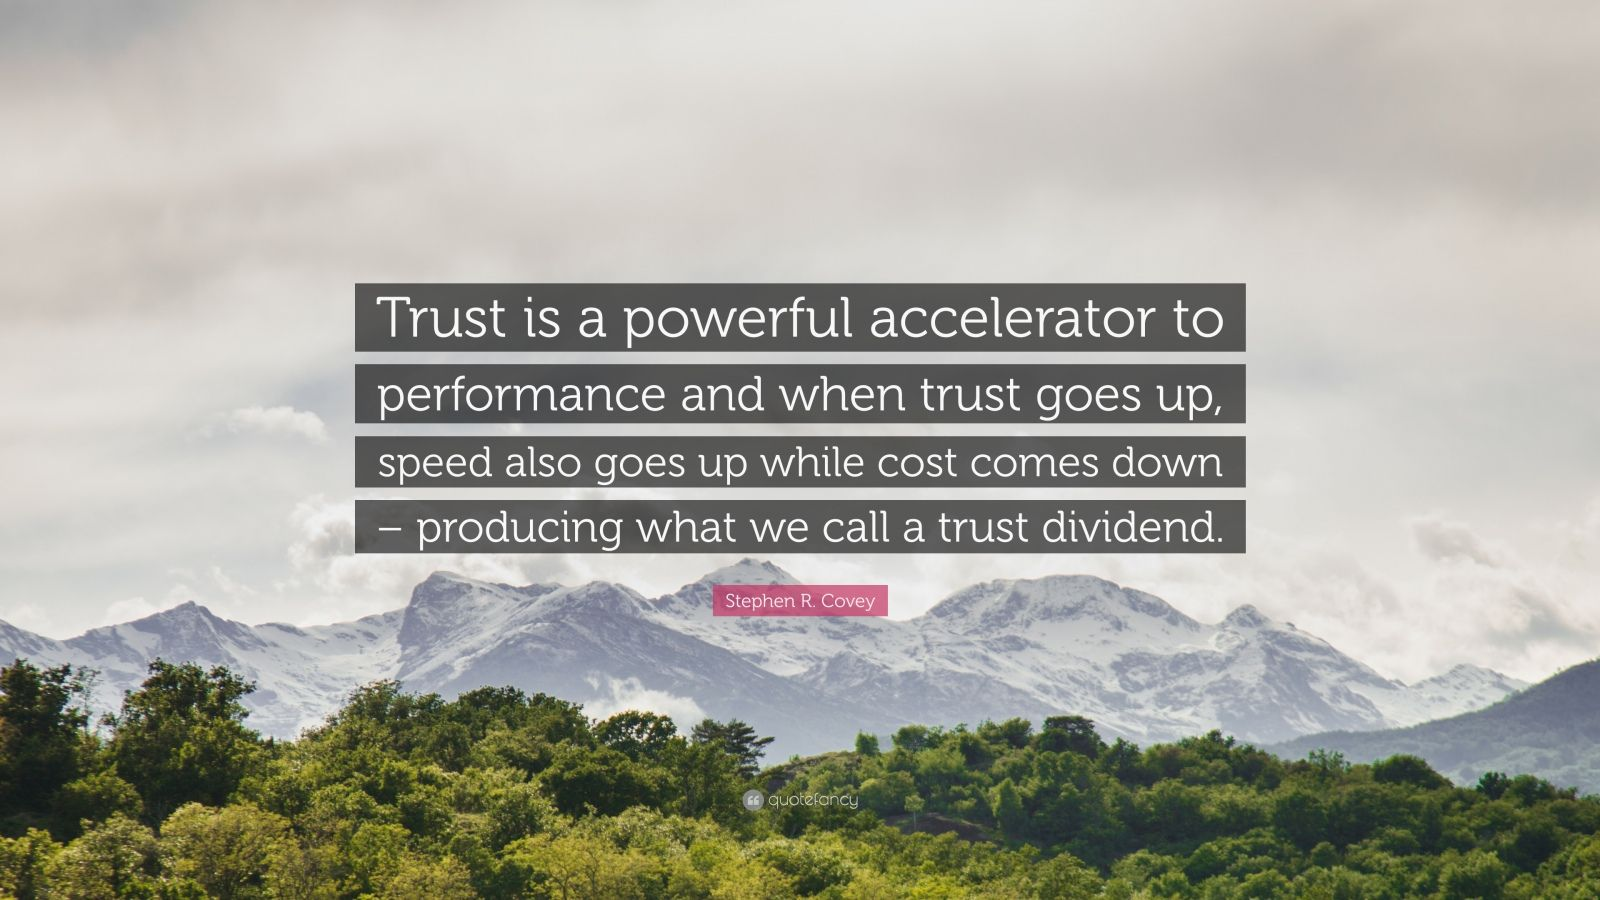 """Stephen R. Covey Quote: """"Trust is a powerful accelerator to performance and when trust goes up, speed also goes up while cost comes down – producing what we call a trust dividend."""""""